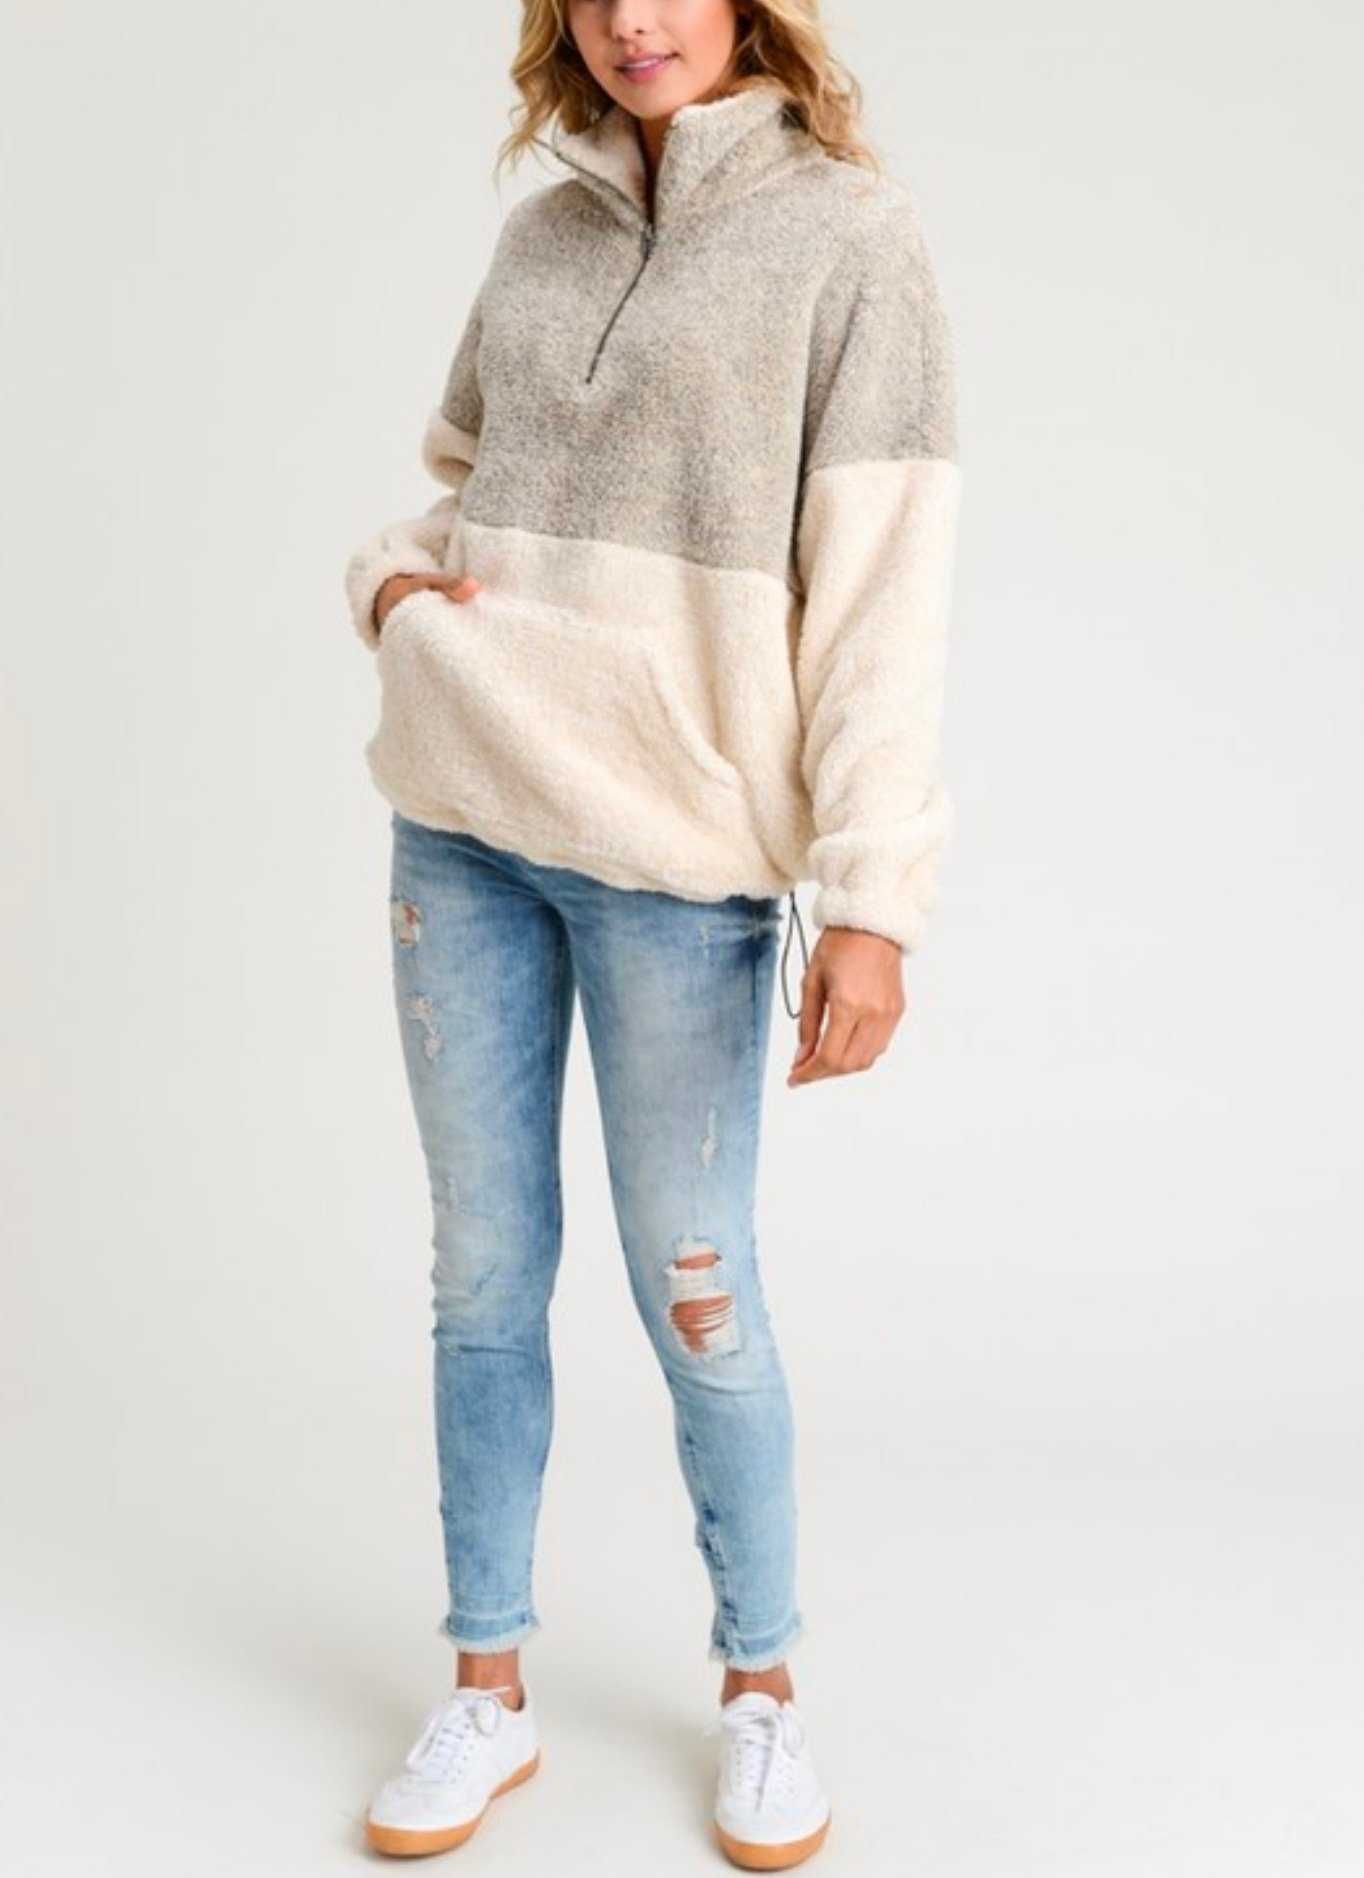 Get womens woll pullover sherpa fleece pullovers by Cost less than  18 only  with 10% OFF Xmas Holiday Deals Promo code  sunifty. cheap sherpa quarter  zip ... e6c70a6f5